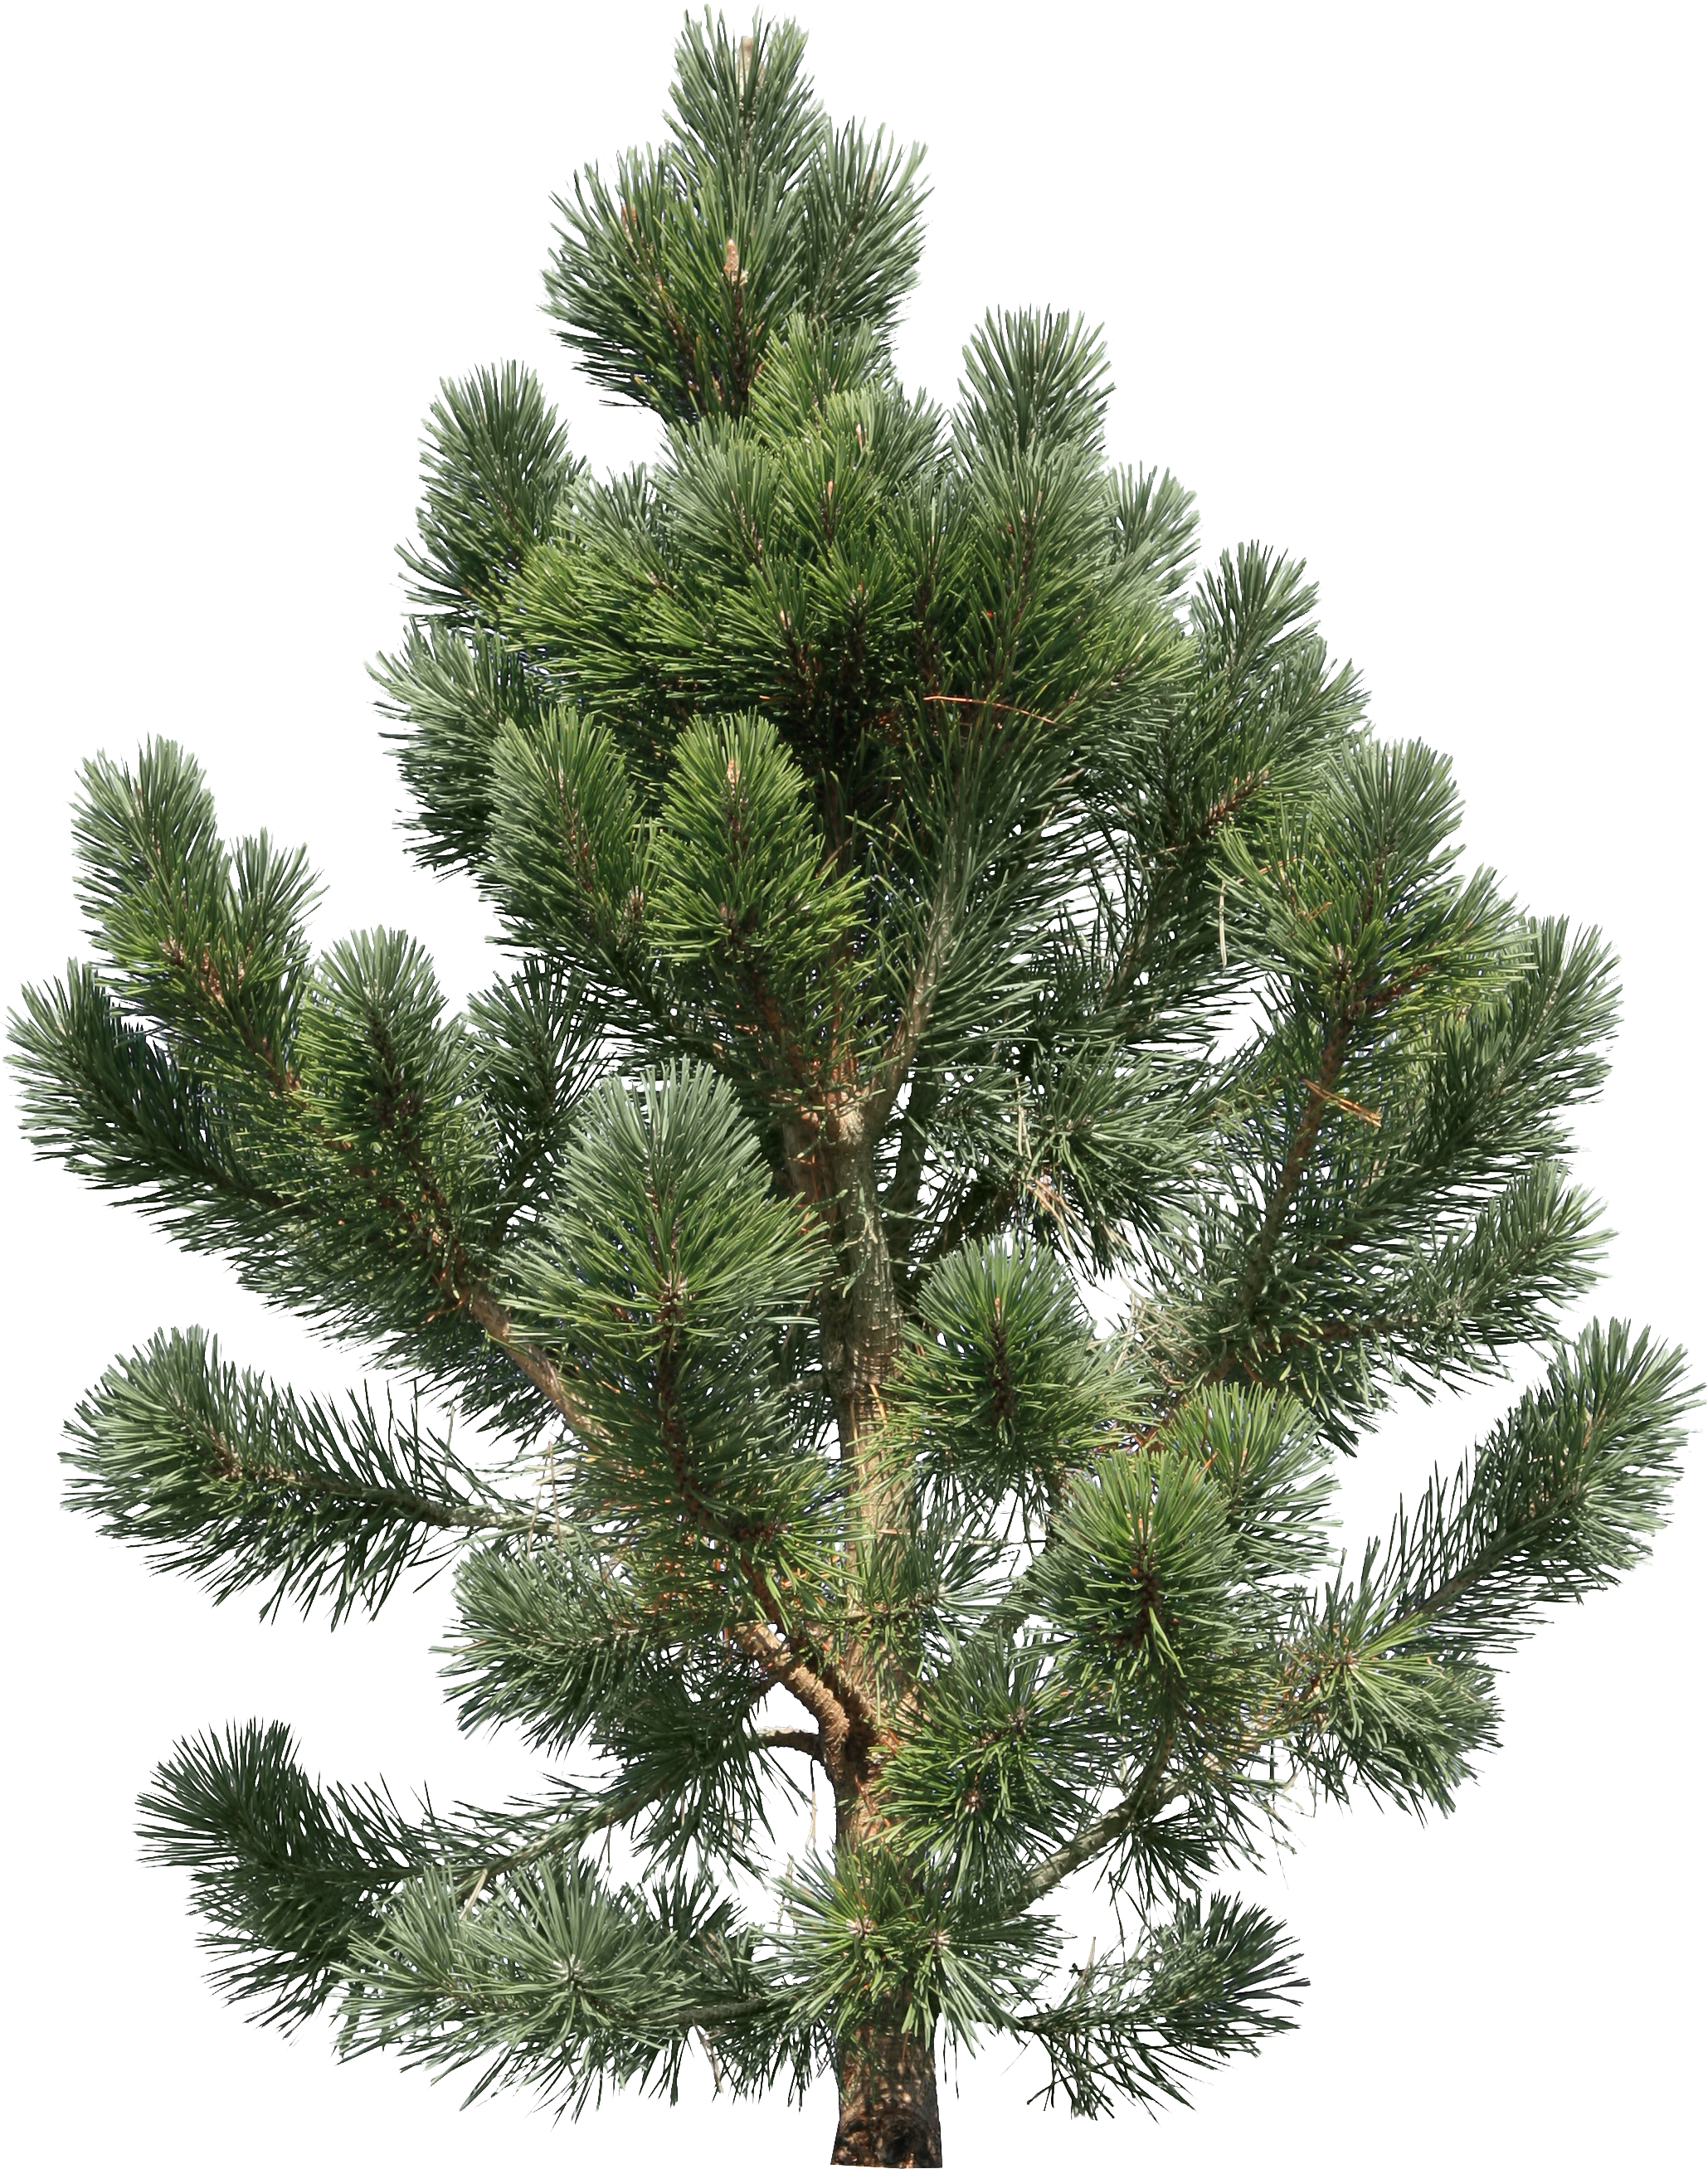 Fern pine png. Christmas tree